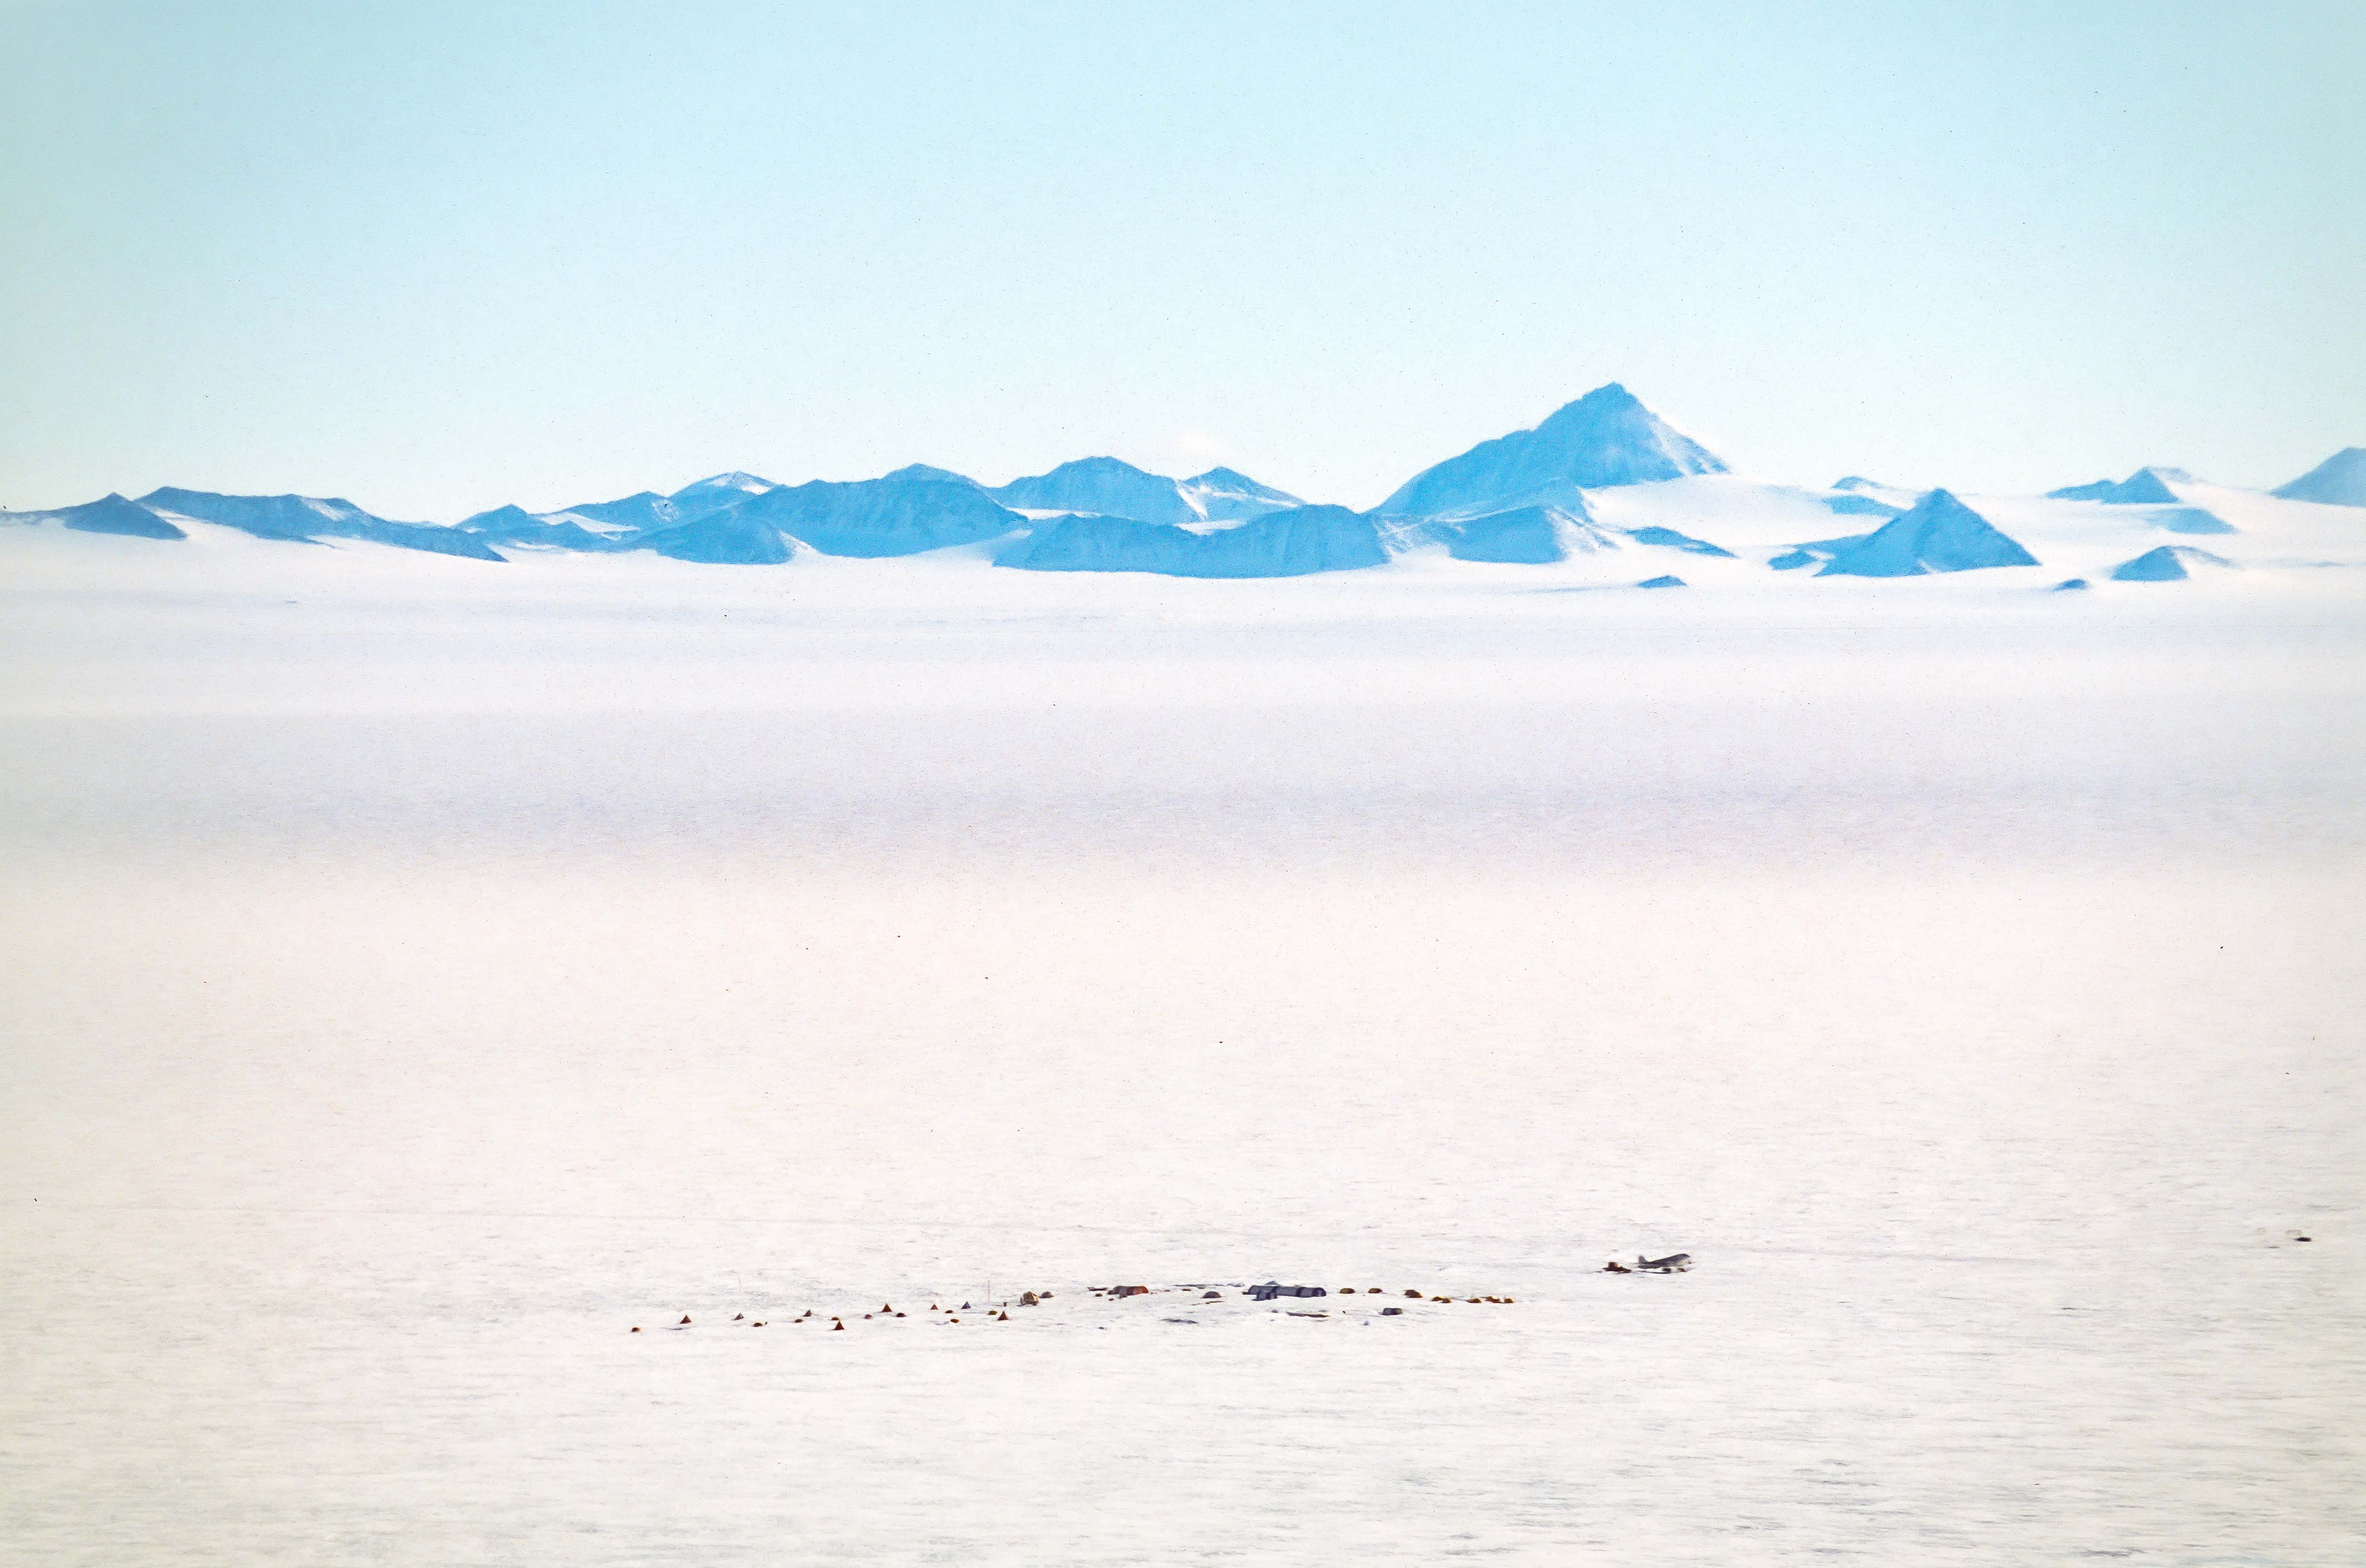 Antarctica, Patriot Hills in Foreground of Mountains, 2001